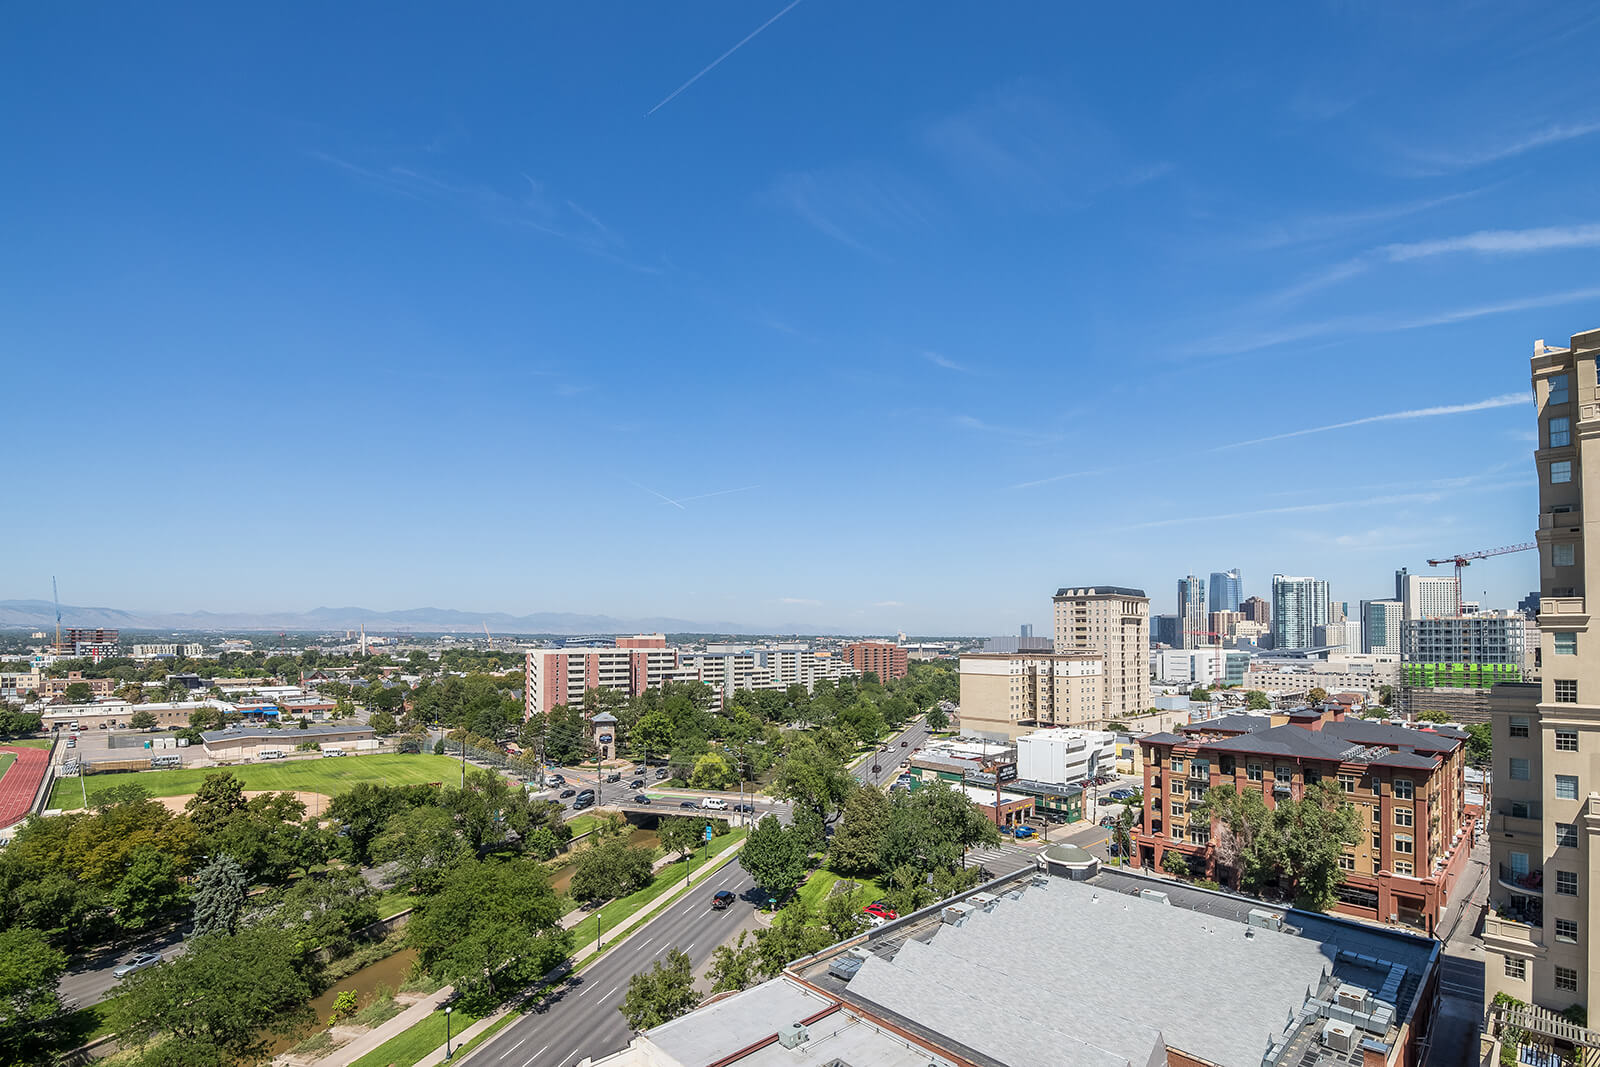 Panoramic View of City from Rooftop or Balcony at 1000 Speer by Windsor, Denver, Colorado